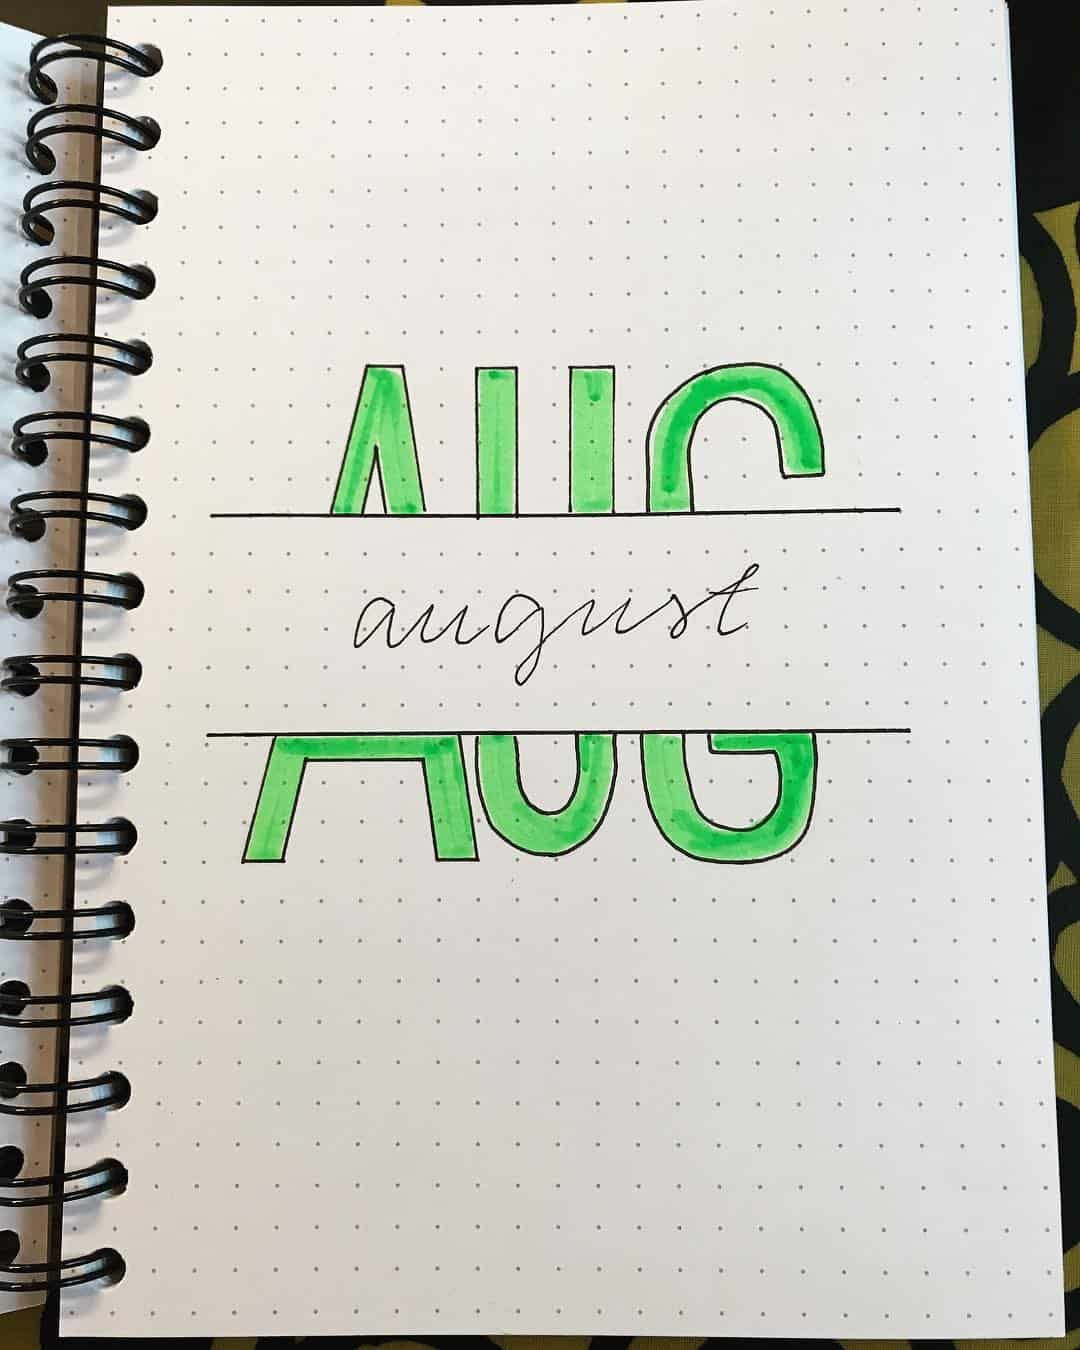 12 Bullet Journal August Cover Ideas That Are Gorgeous #augustbulletjournal